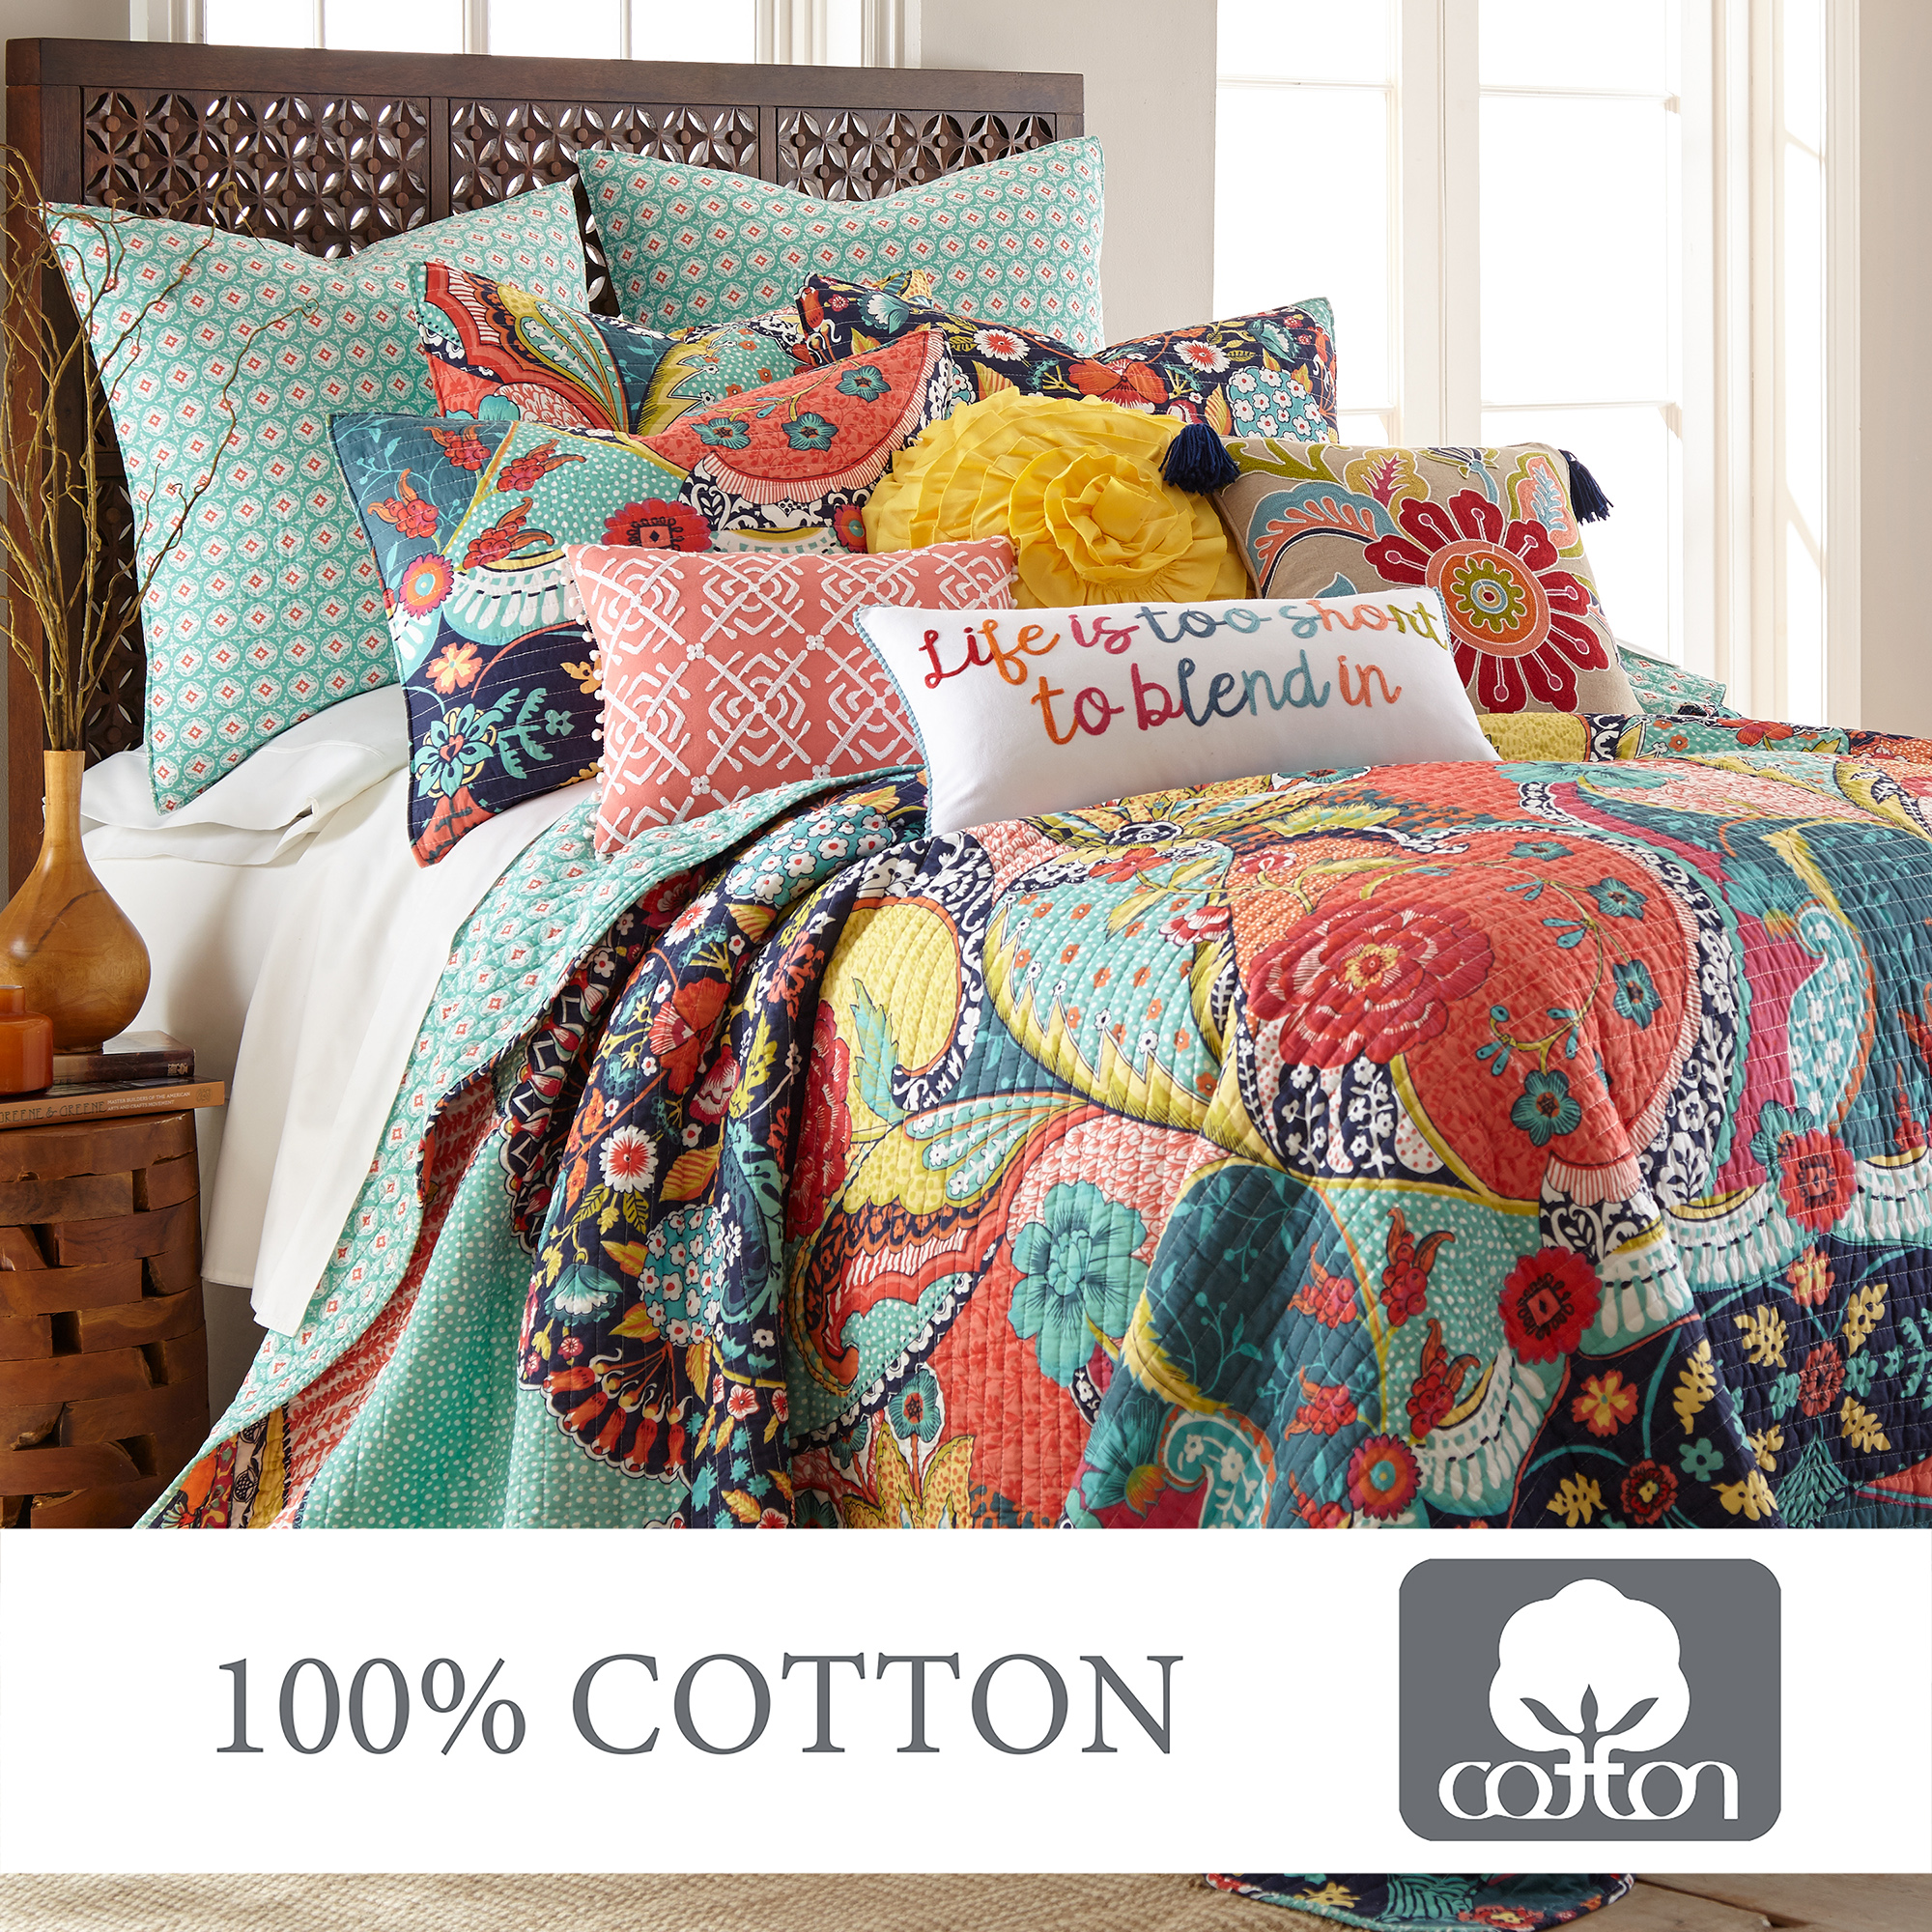 Levtex Home Jules Quilt Set King 106x92in Two Pillow Shams 36x20in Bohemian Teal Orange Yellow Green Blue Red Black Reversible Cotton Fabric Walmart Com